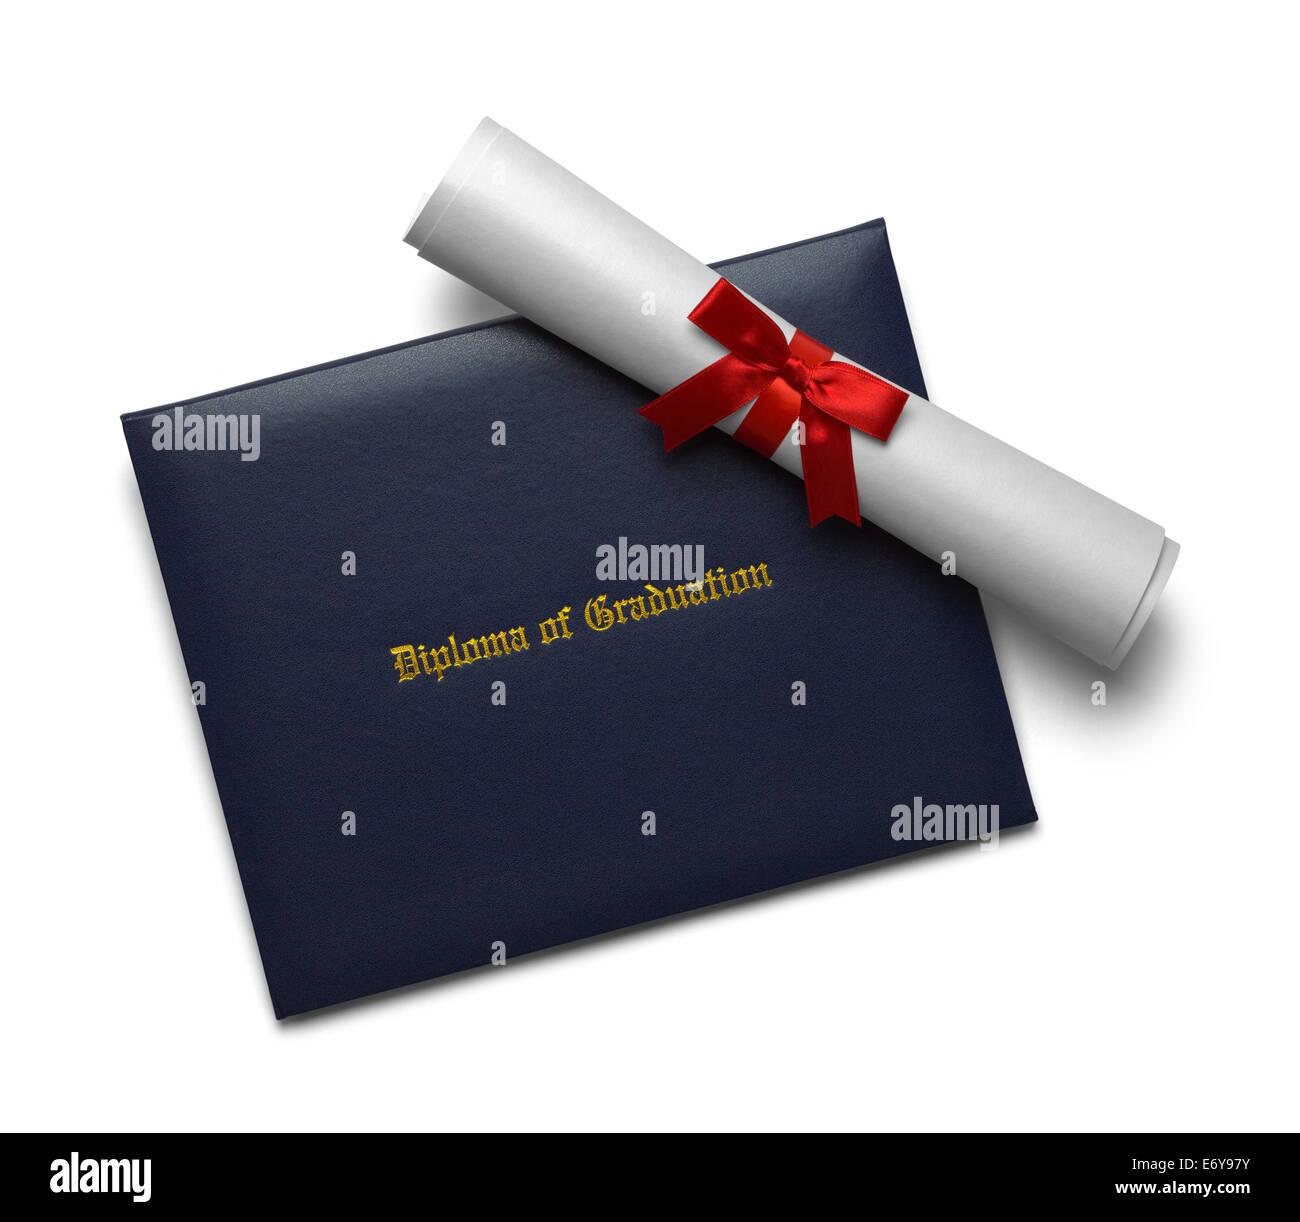 Blue Diploma of Graduation Cover with Degree Scroll Isolated on White Background. Stock Photo